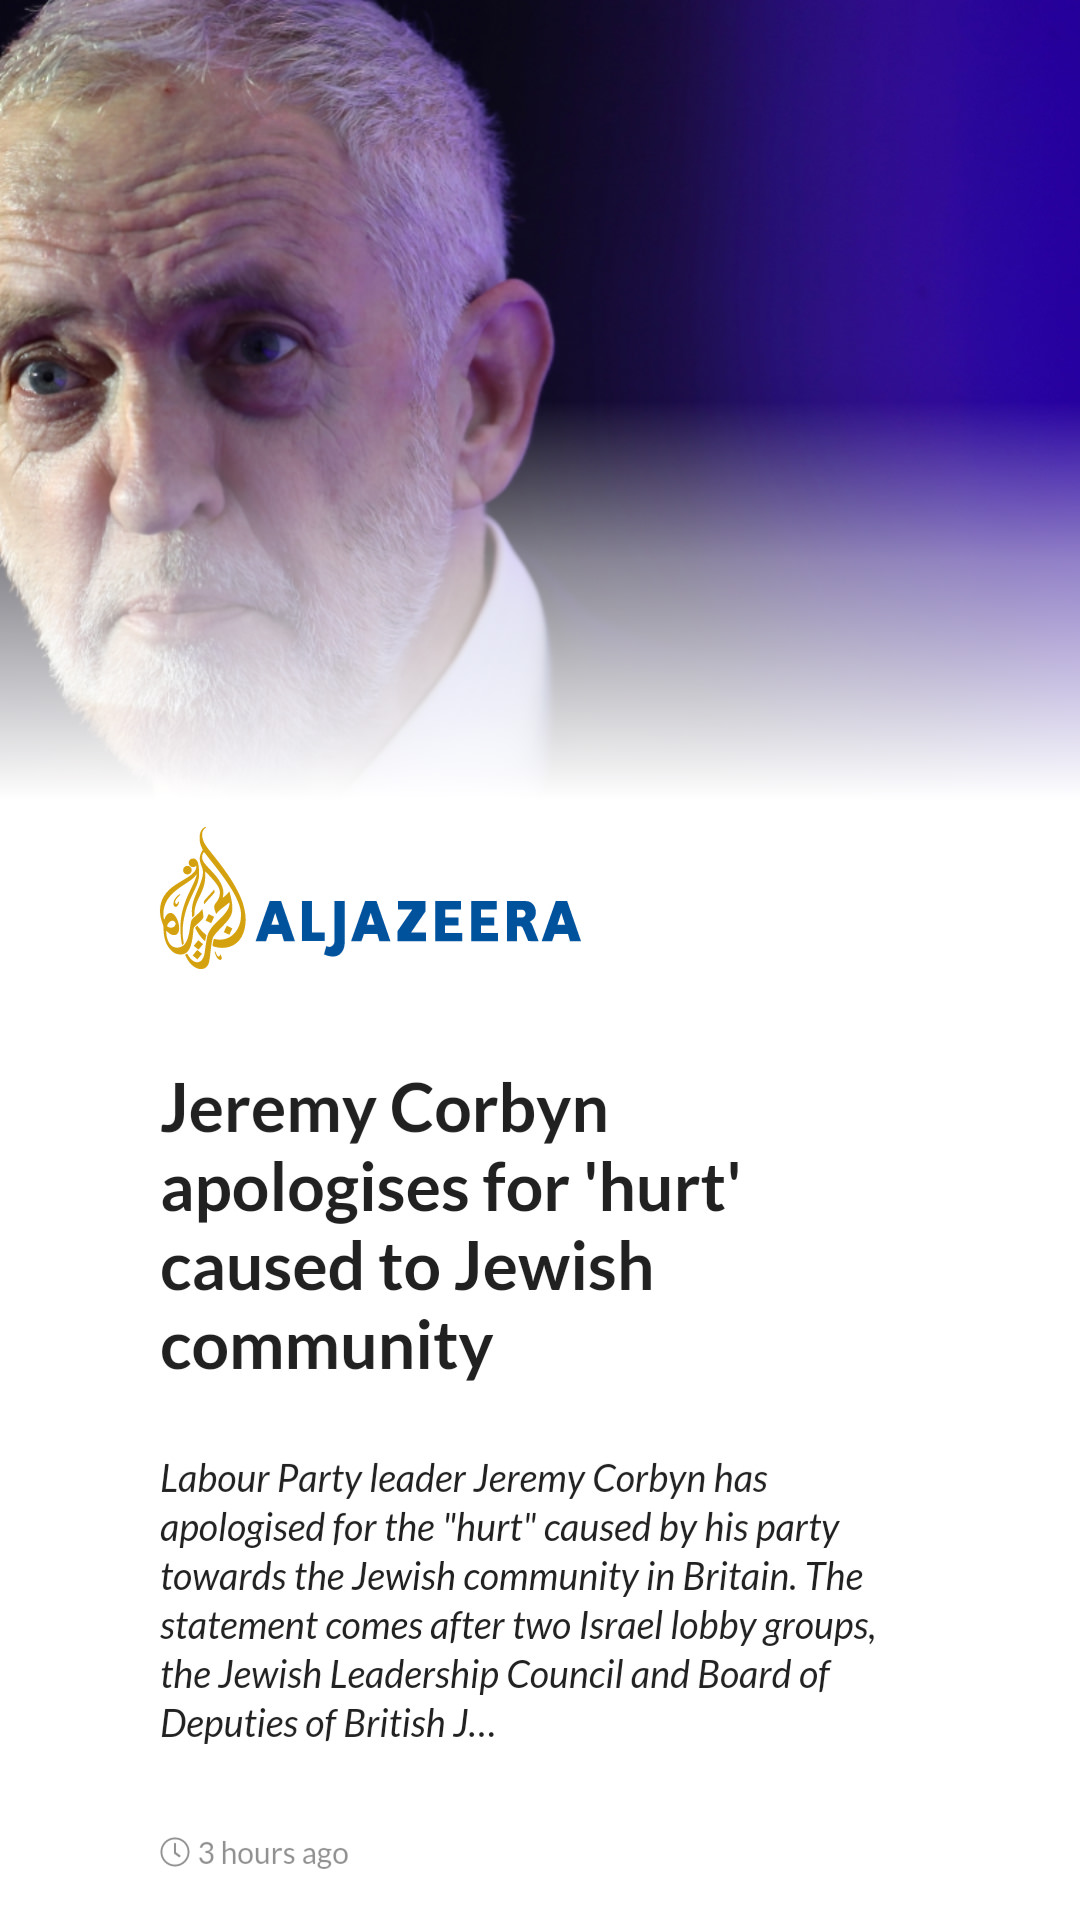 Aljazeera News screenshot 3